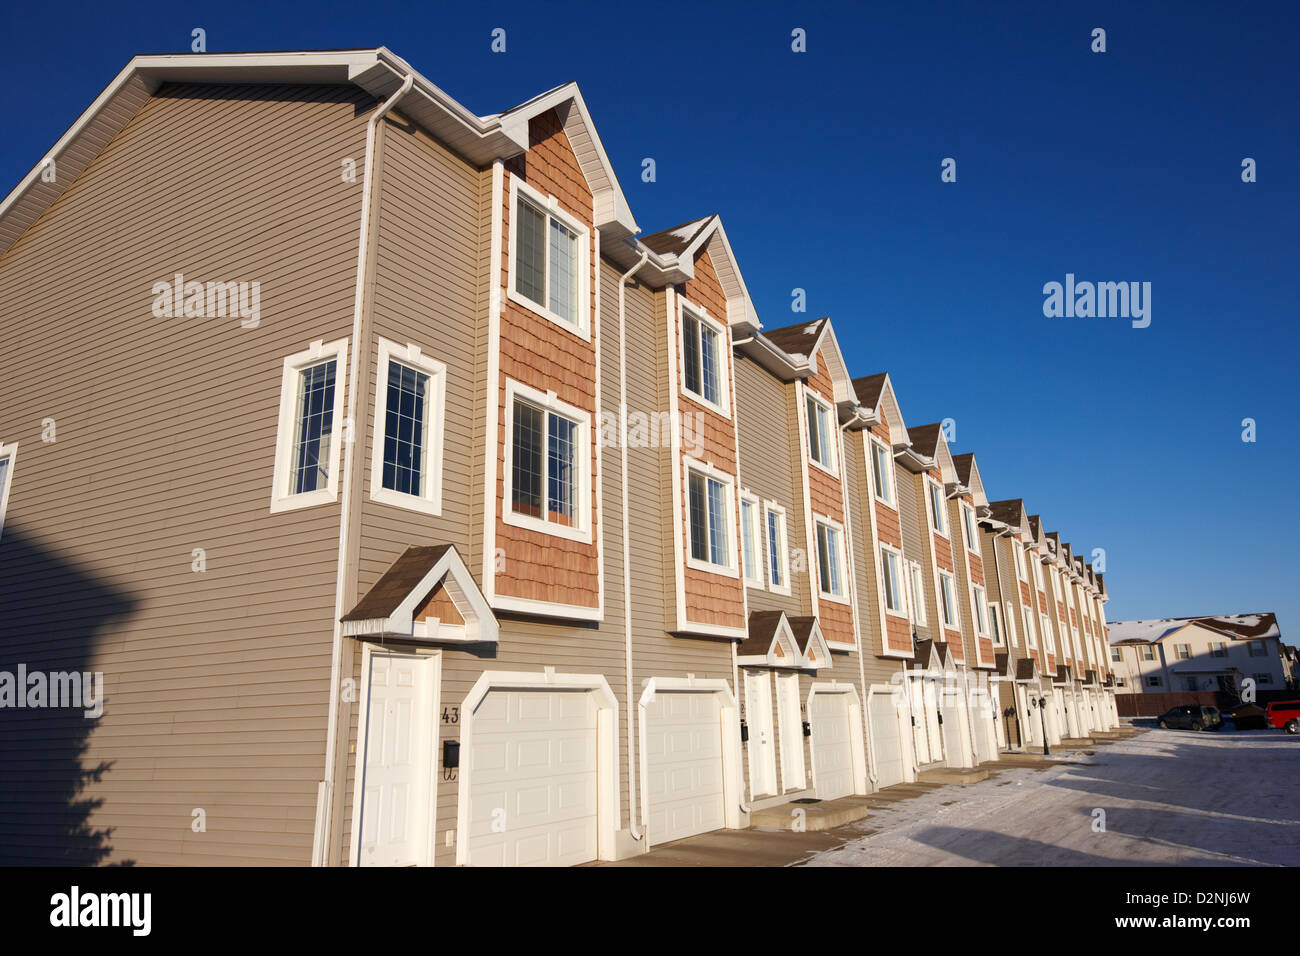 row of condominium starter homes during winter Saskatoon Saskatchewan Canada - Stock Image